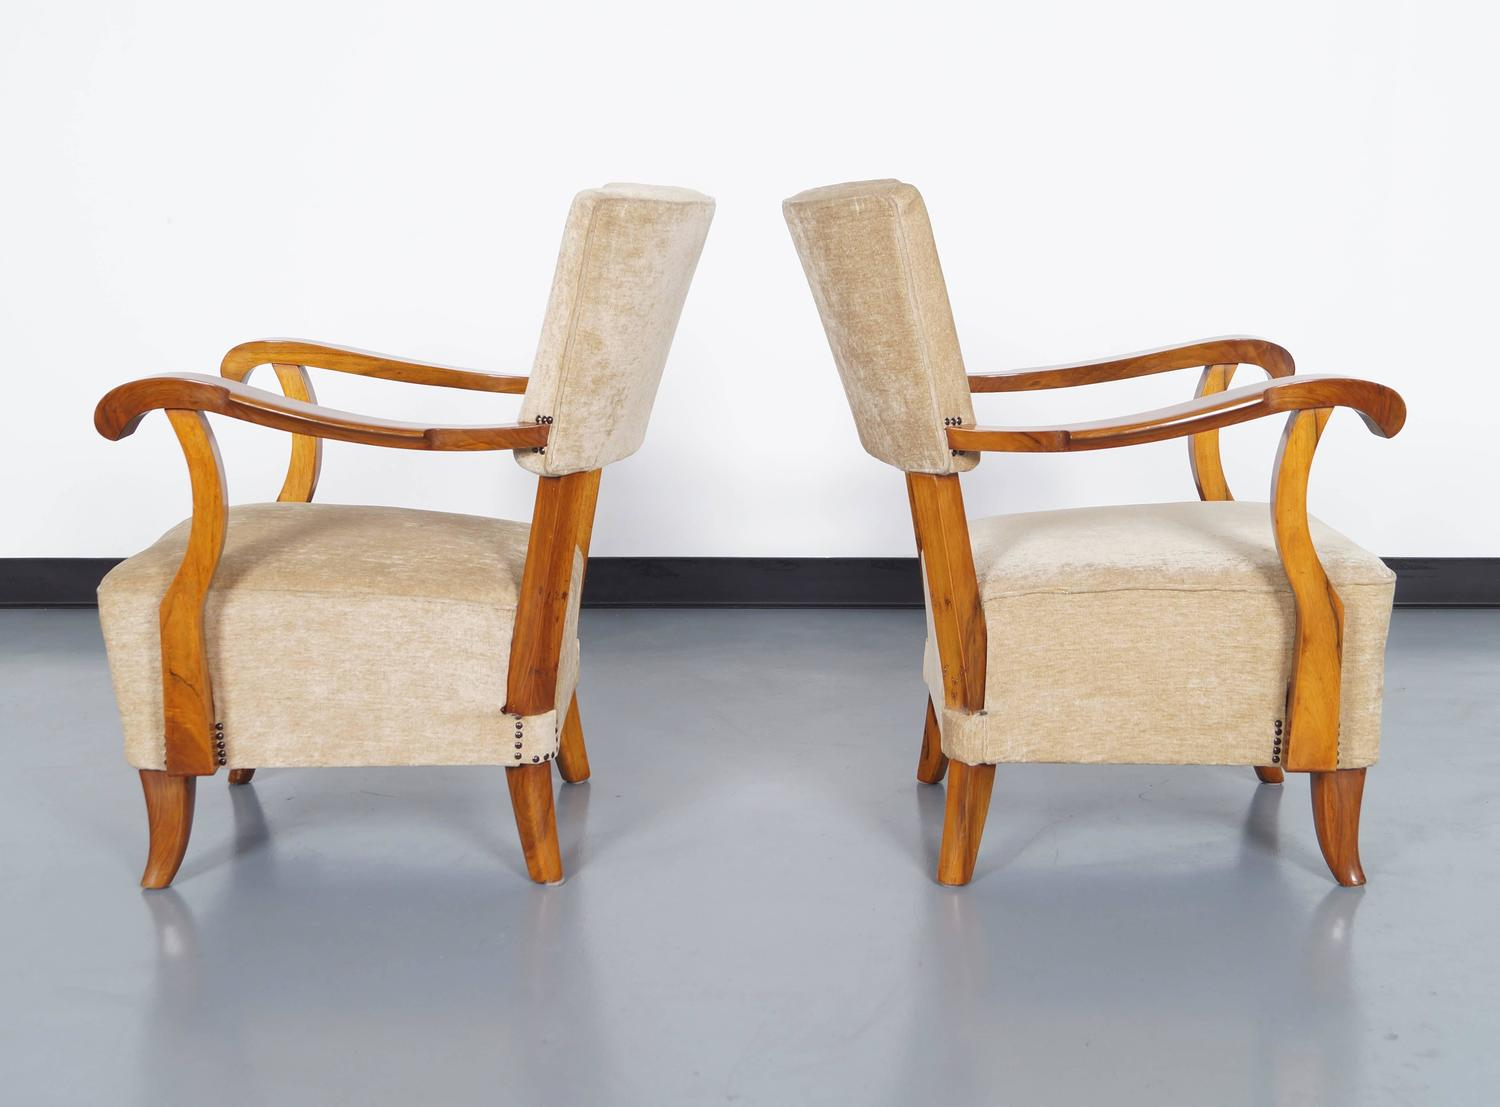 Vintage French Art Deco Lounge Chairs For Sale At 1stdibs